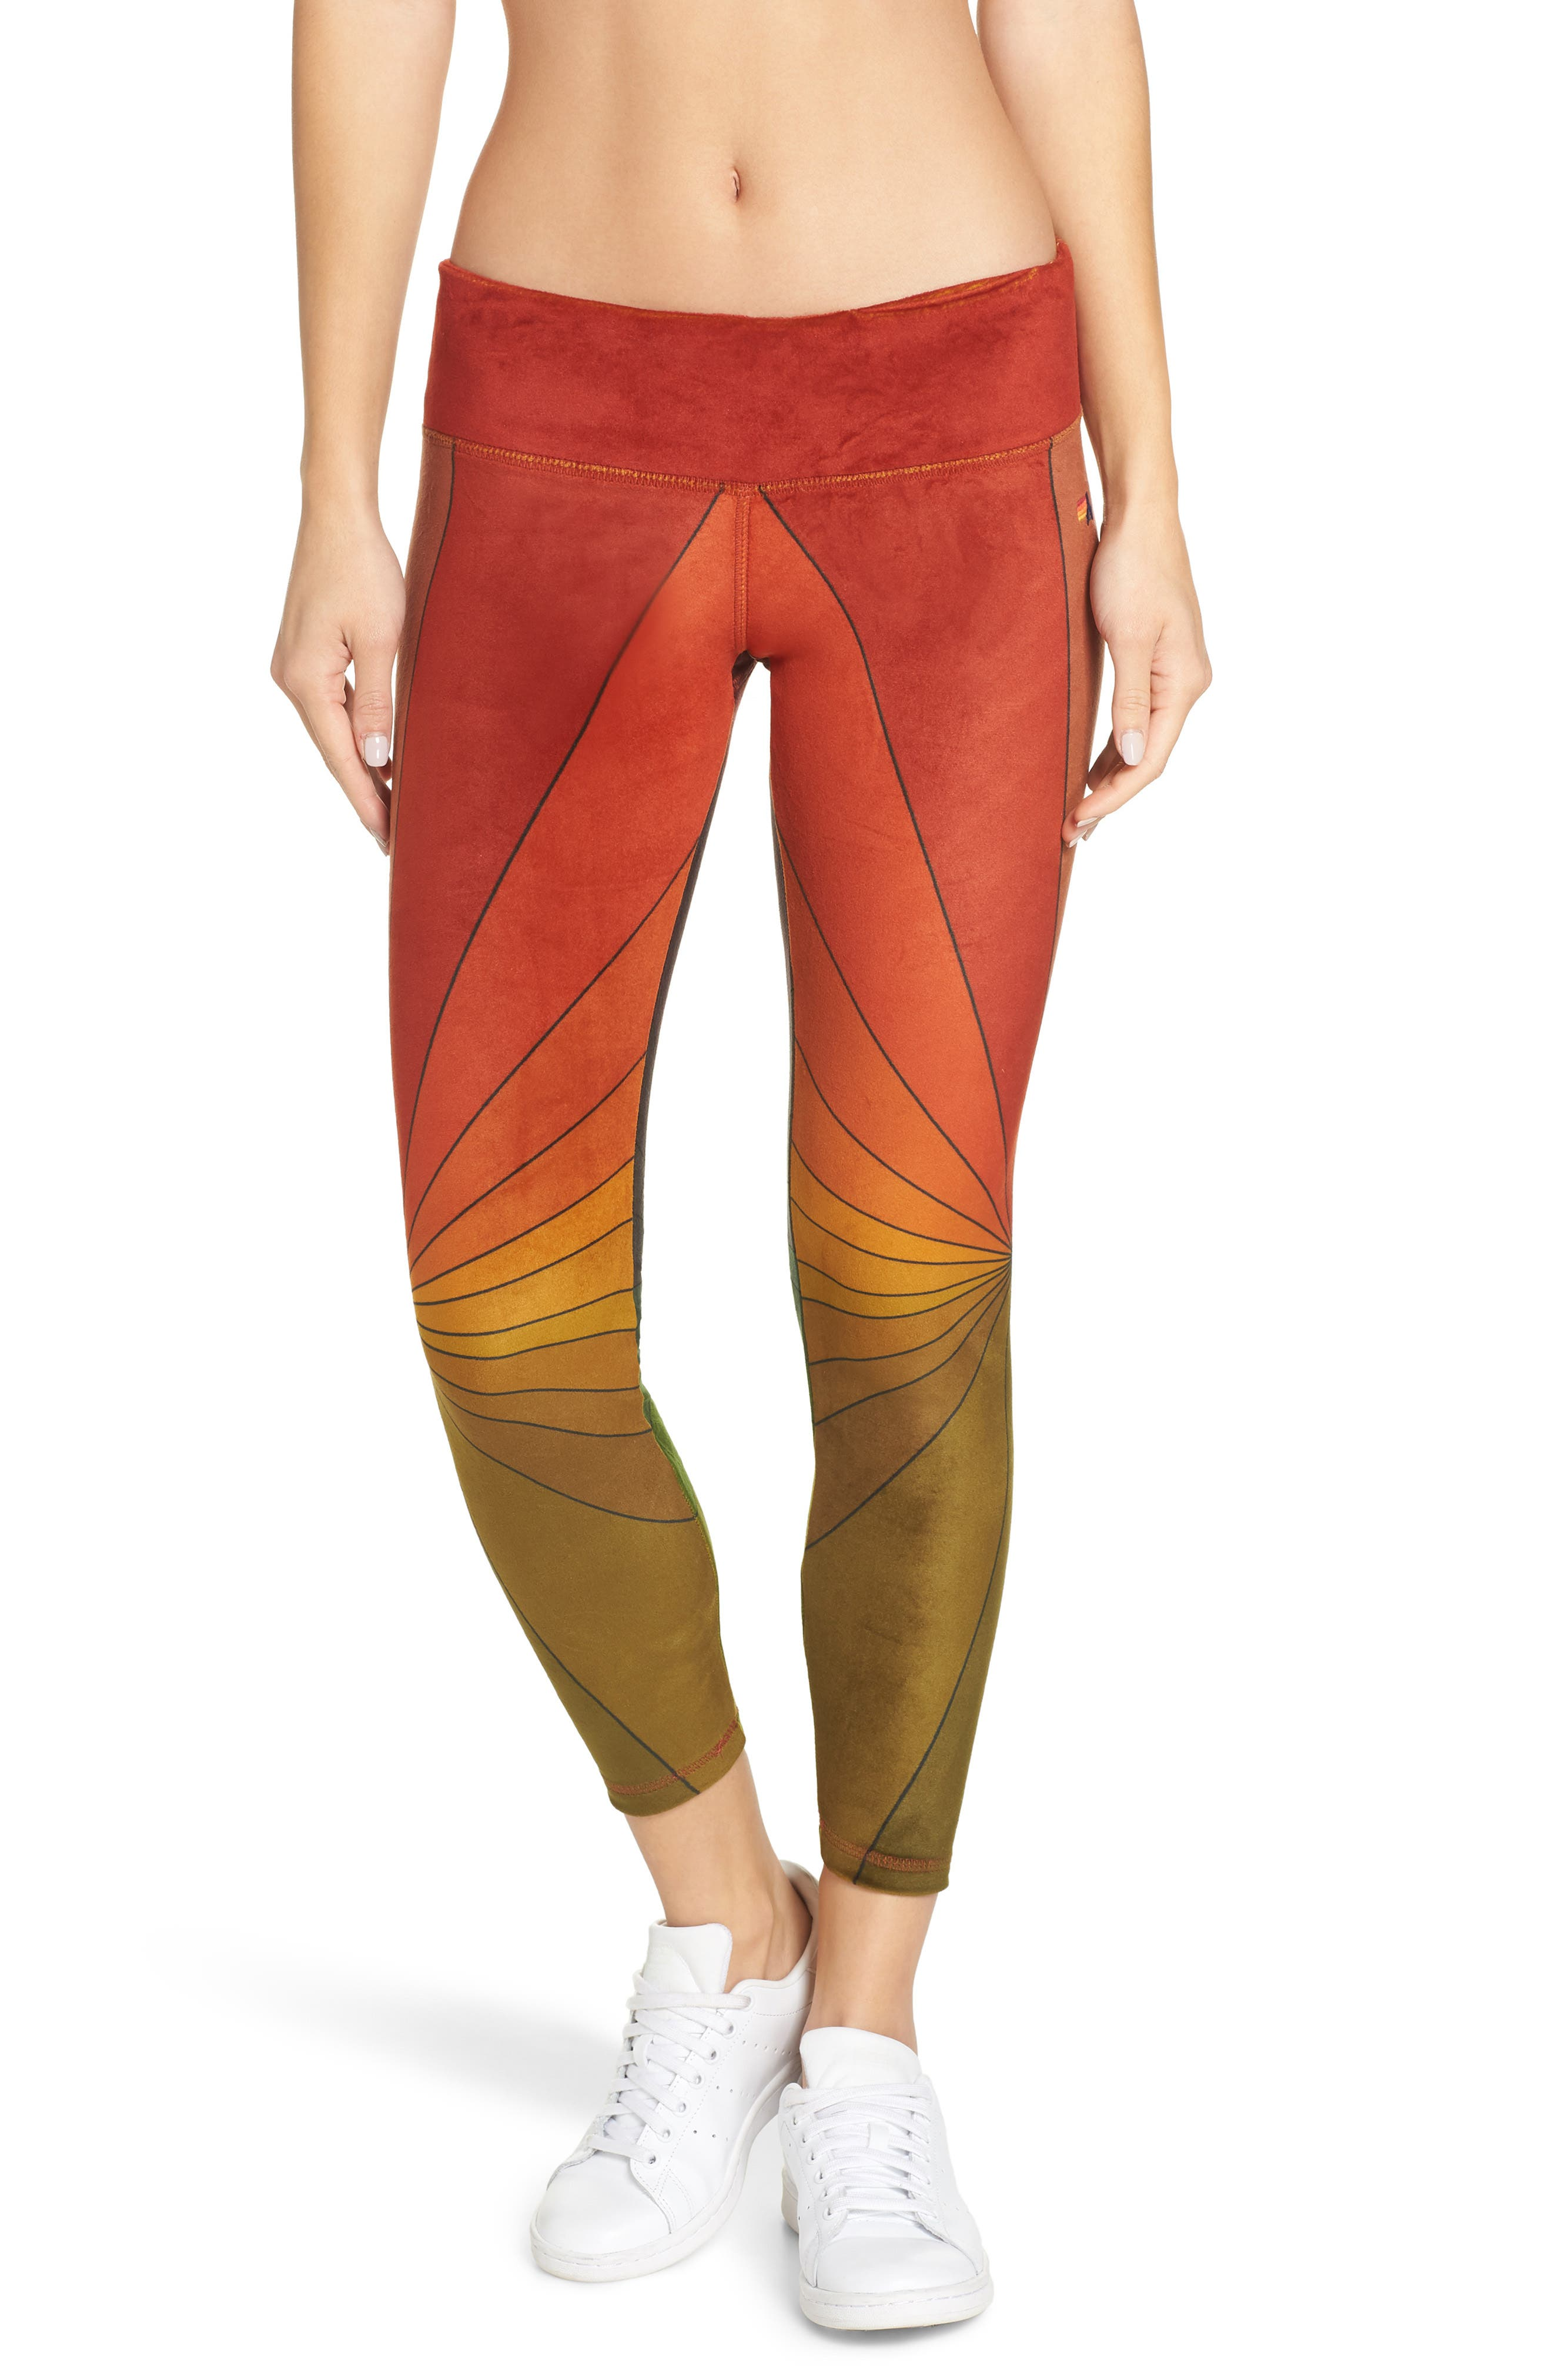 AVIATOR NATION, Rainbow Sunburst Velour Leggings, Main thumbnail 1, color, 600